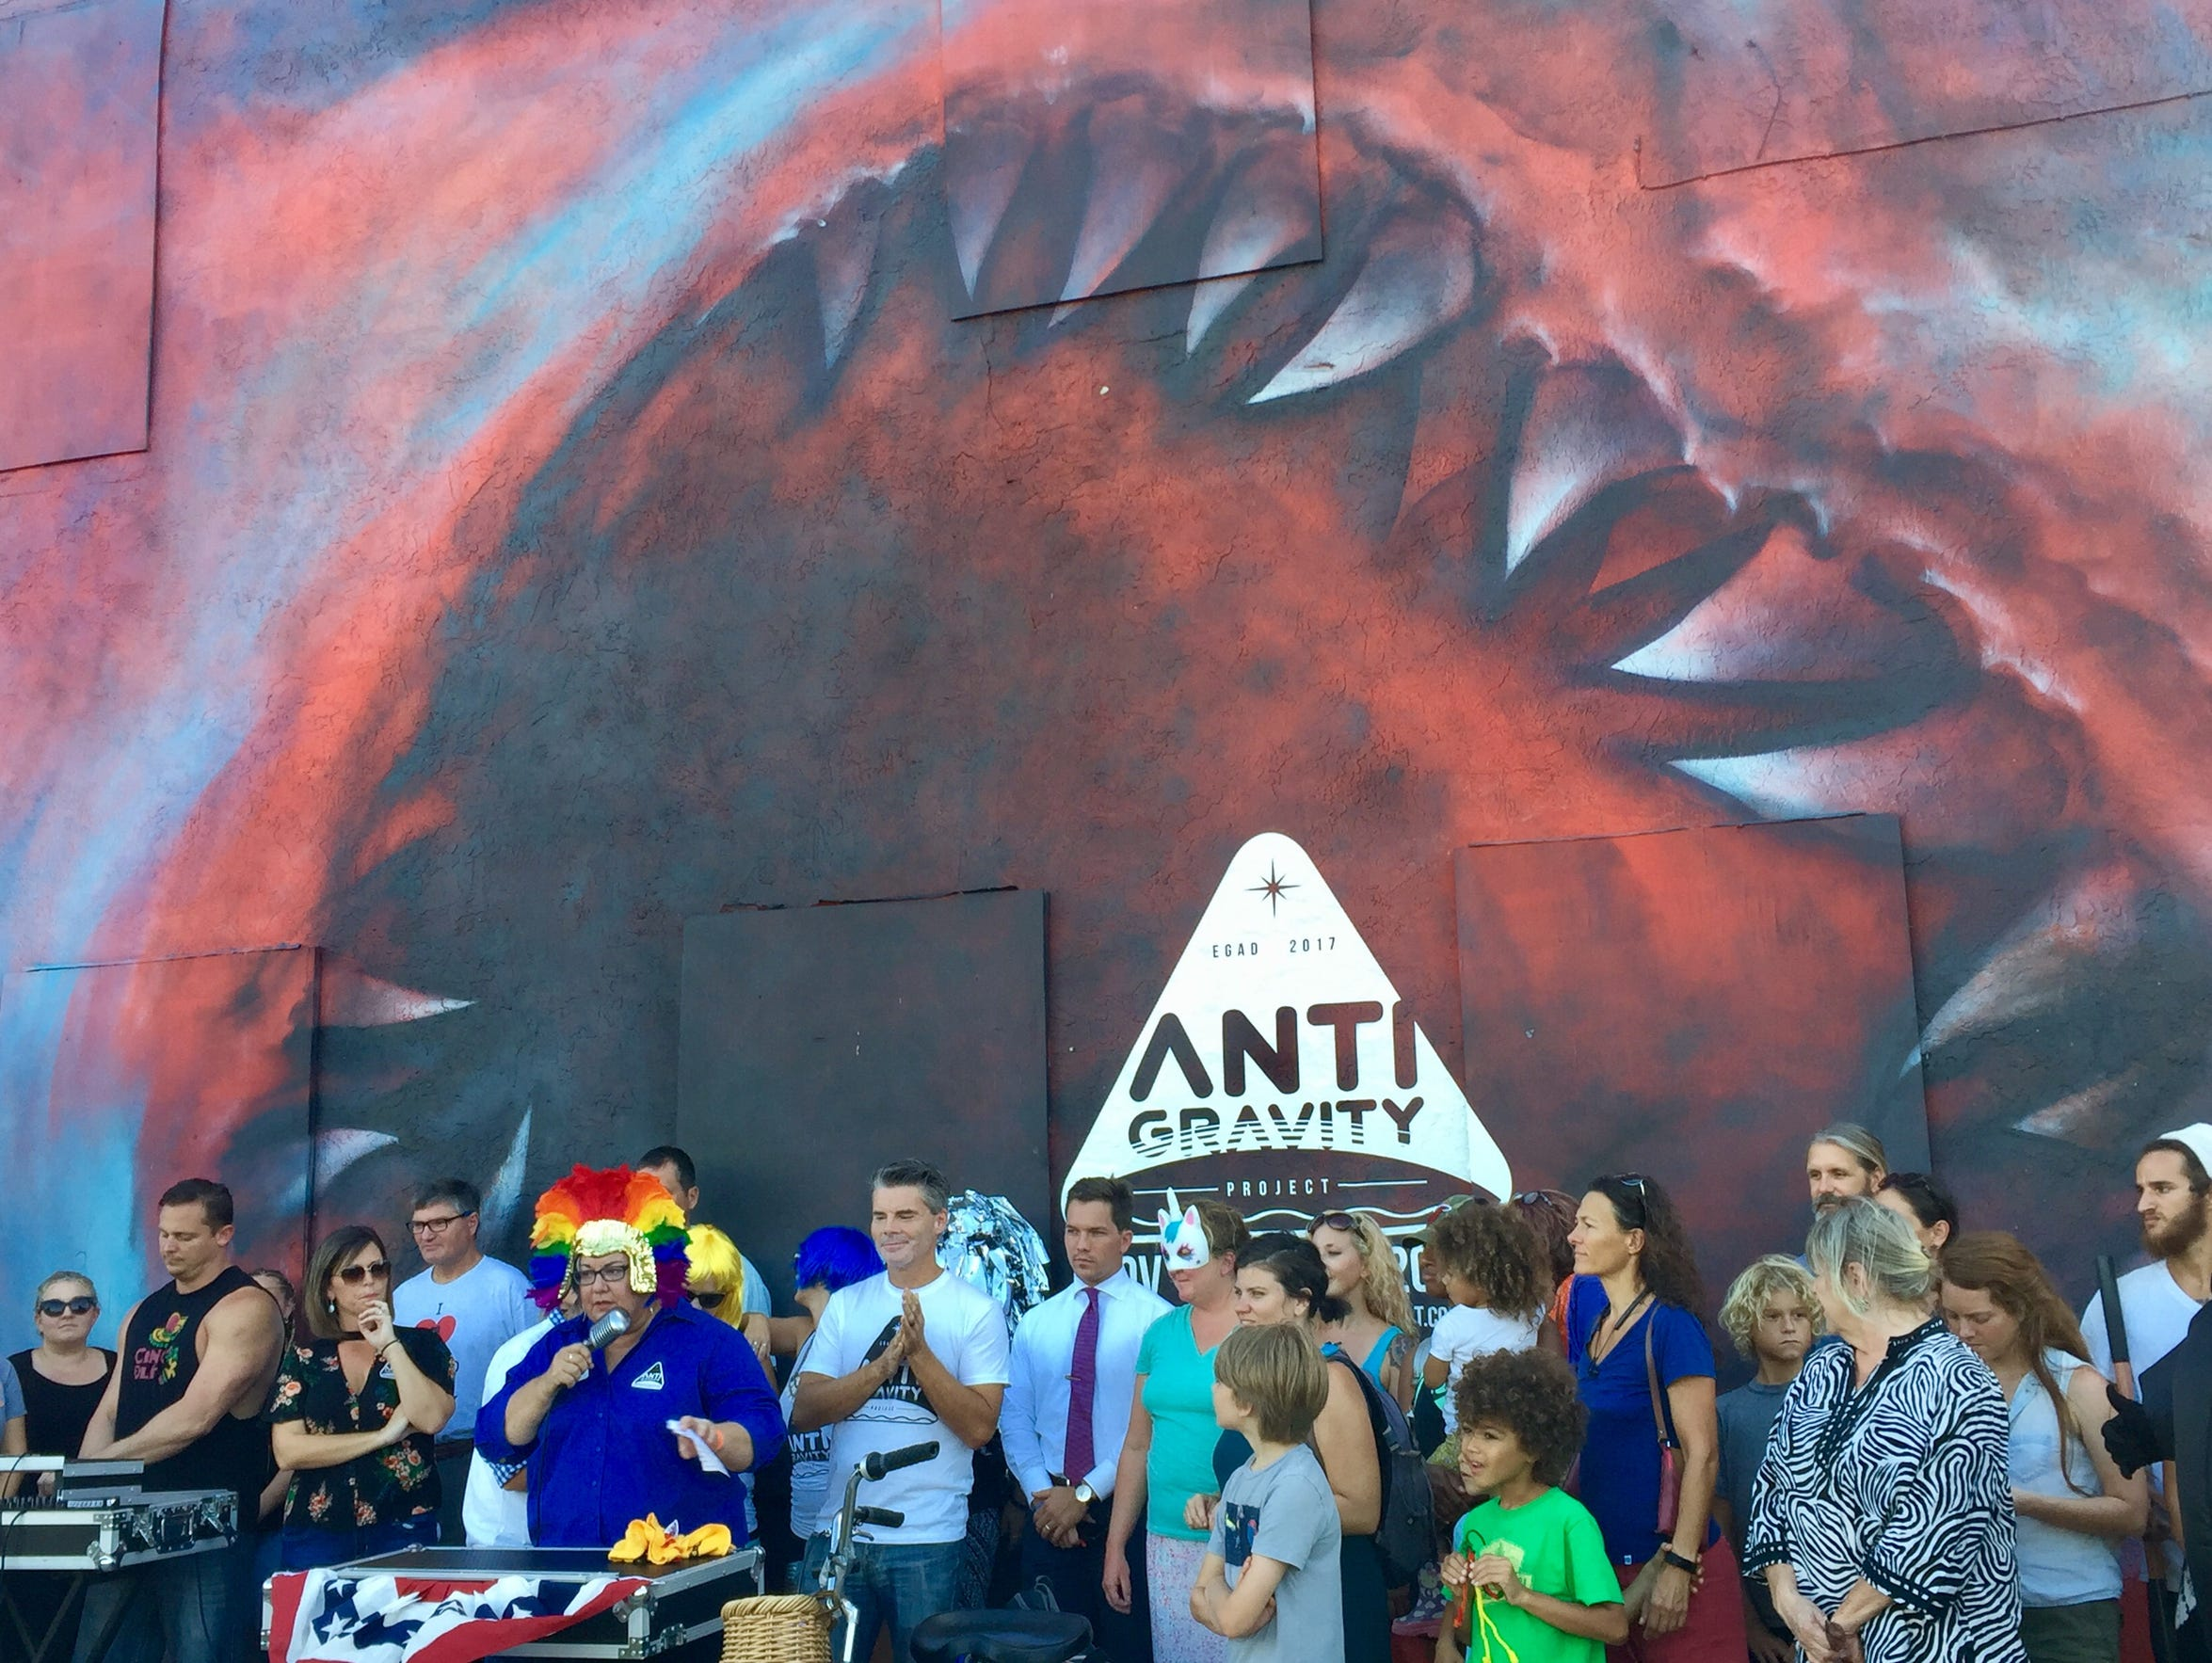 Derek Gores (center, wearing a white T-shirt) co-announced creation of the Anti-Gravity Project during a September press event next to Shark Toof's mural in Eau Gallie.